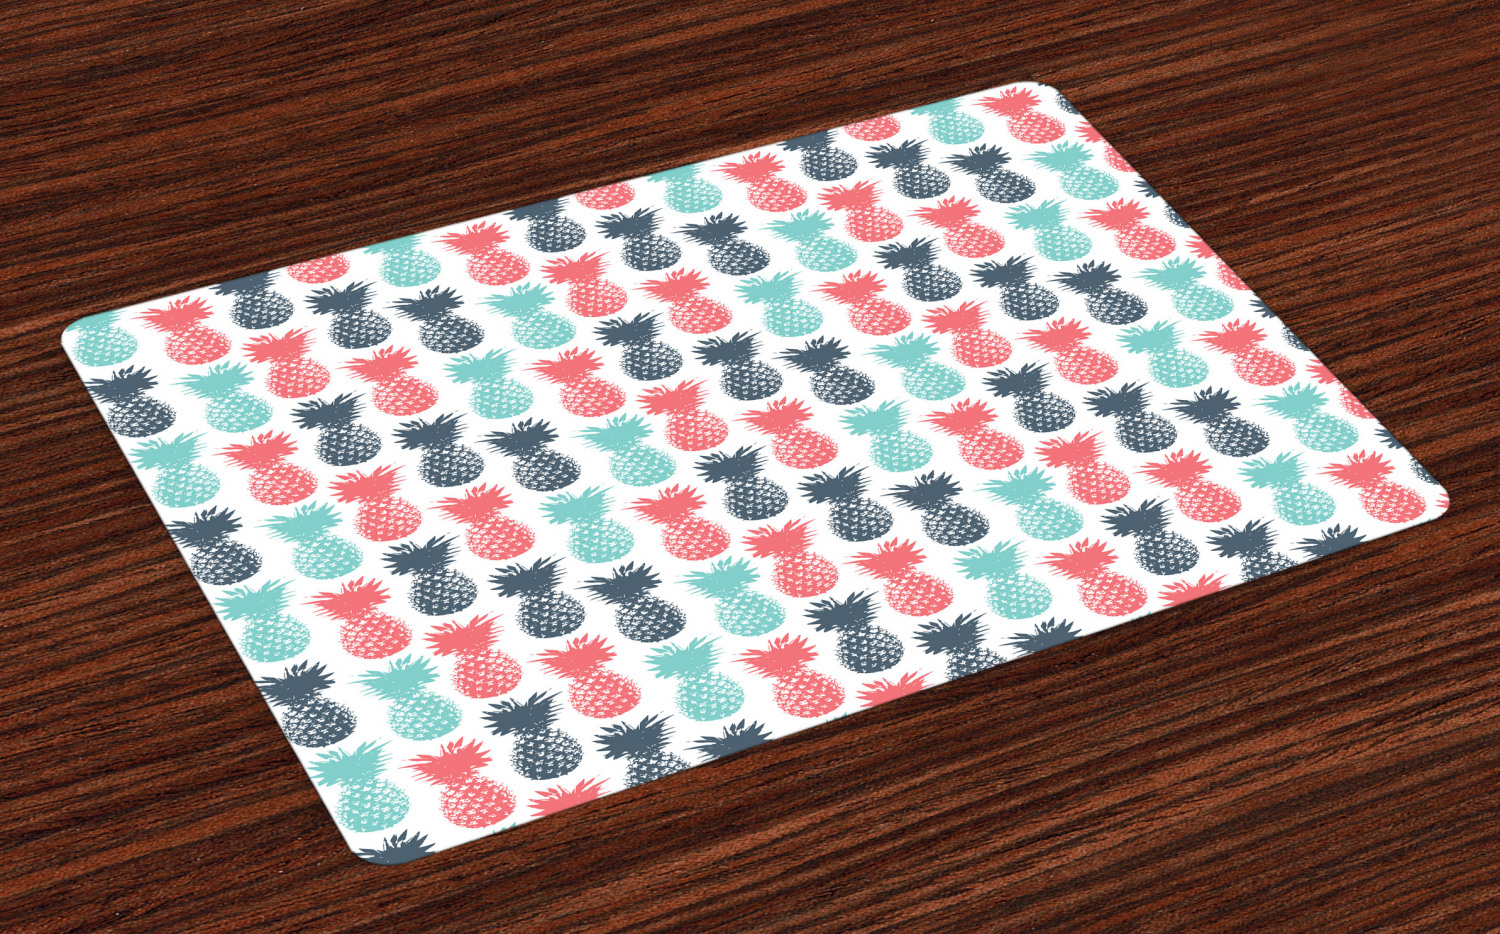 Set of 4 Pineapple with Green Border Canvas Cotton Nautical Summer Place Mats